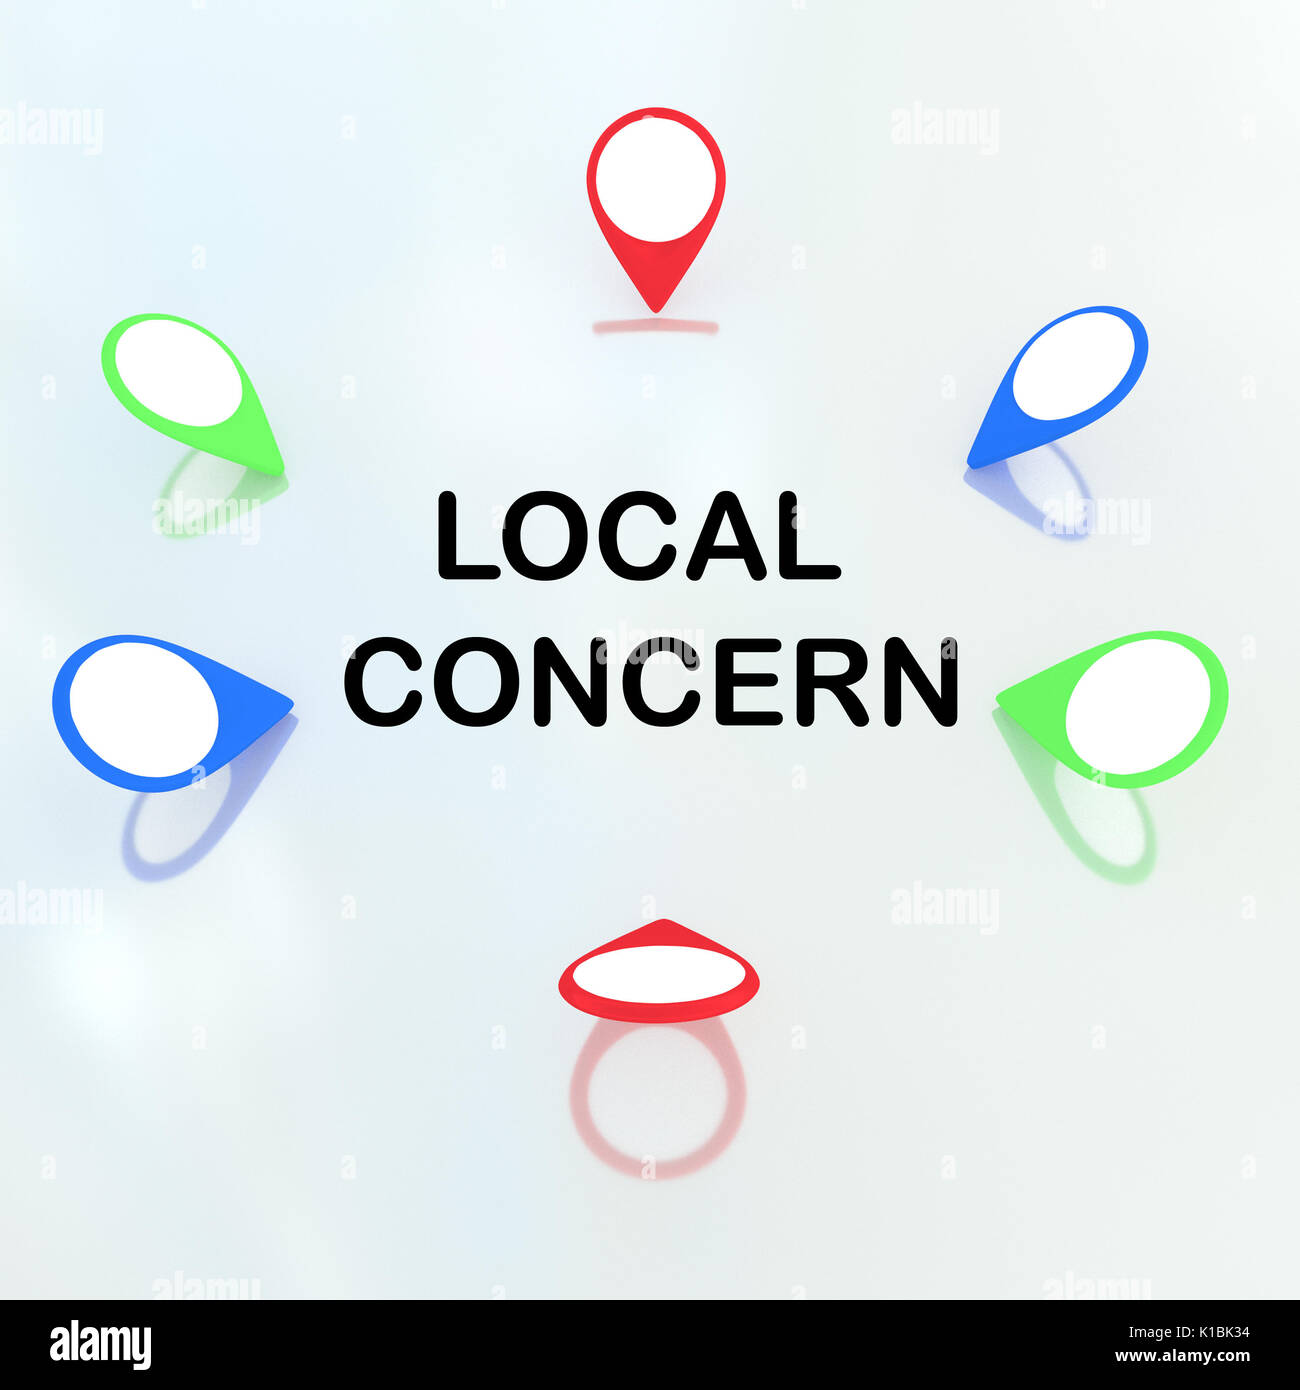 3D illustration of 'Local Concern' title surrounded by location markers. Locality concept. - Stock Image